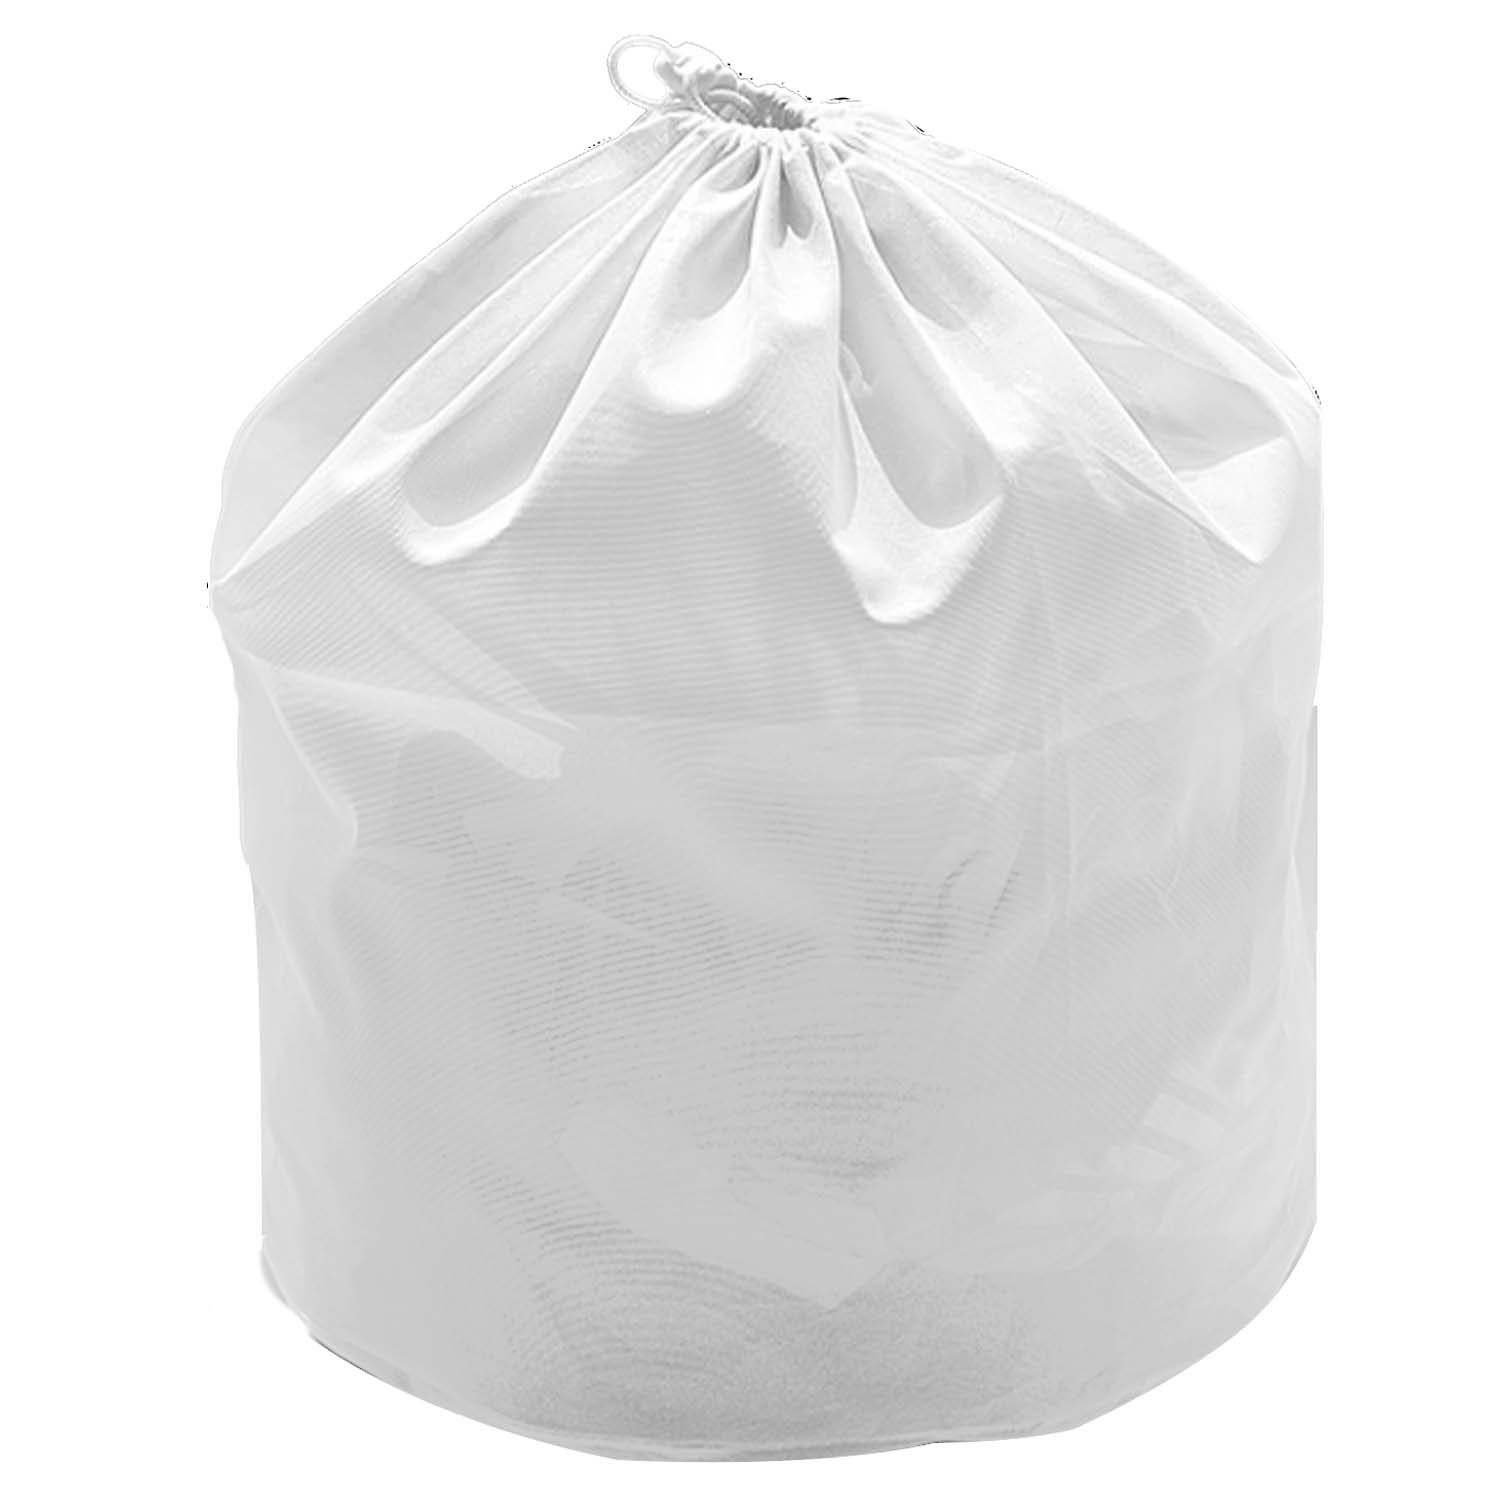 Laundry bags are ideal when you're toting clothes to a community laundry room or Something for Everyone· Shop our Huge Selection· Up to 70% Off· Top Brands & Styles61,+ followers on Twitter.